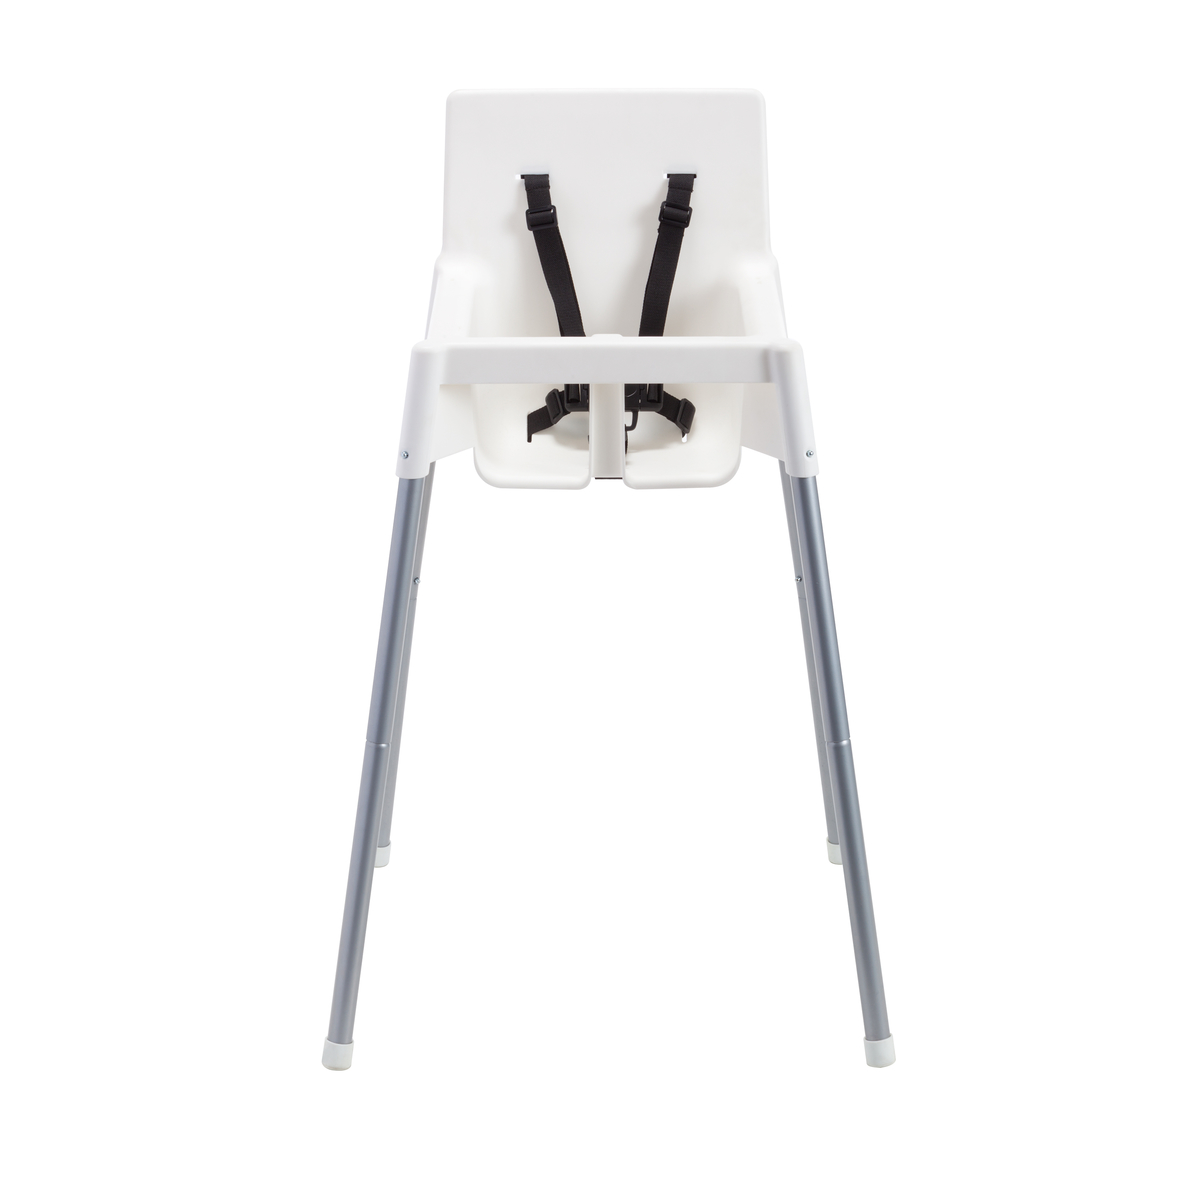 High Chair Kmart Quadro High Chair Kmartnz